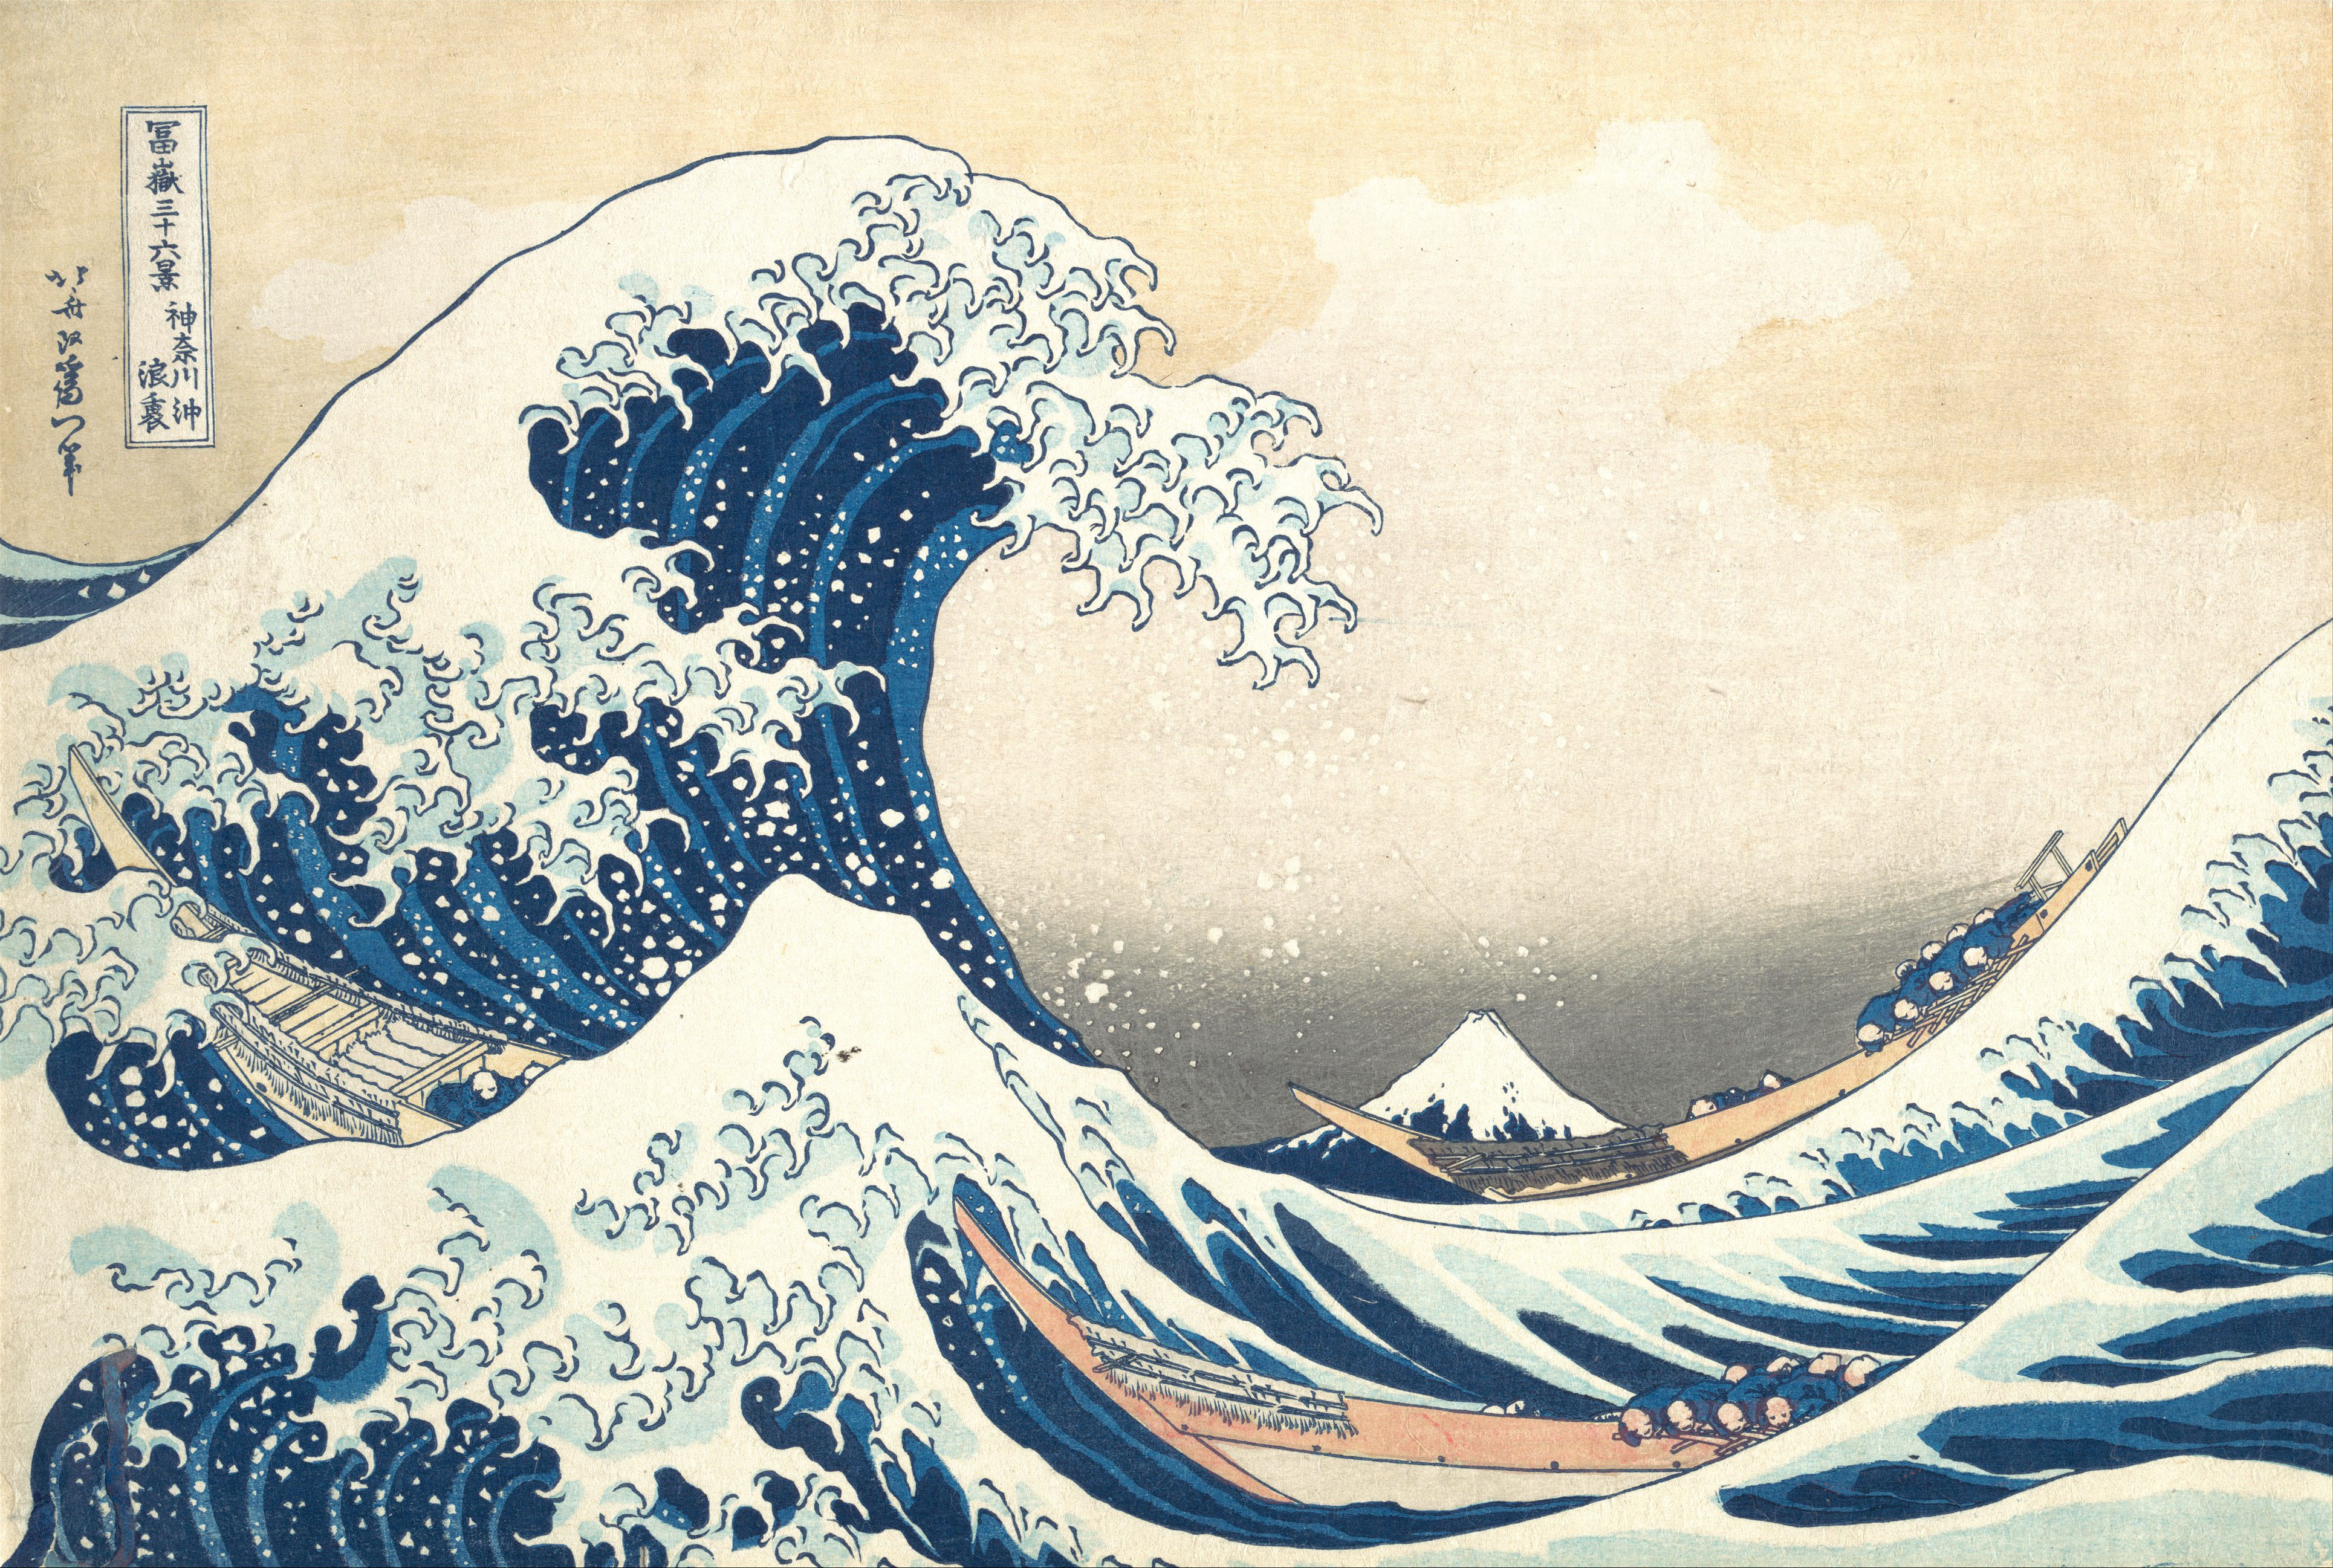 Canvassing The Masterpieces The Great Wave Off Kanagawa By Hokusai The Kazoart Contemporary Art Blog